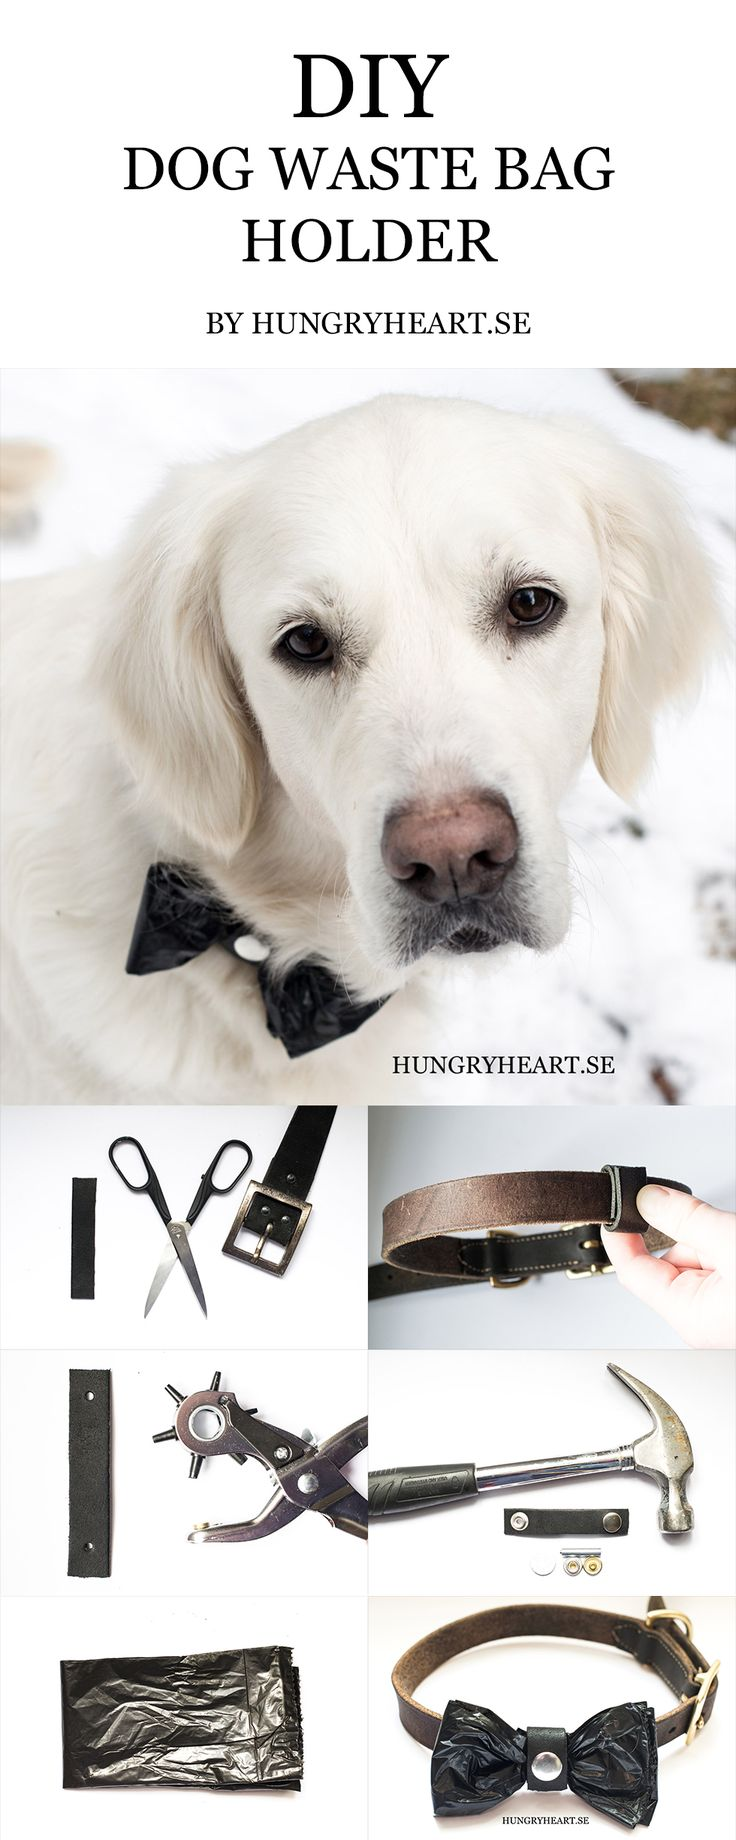 DIY Dog Waste Bag Holder Tutorial | Hungry Heart